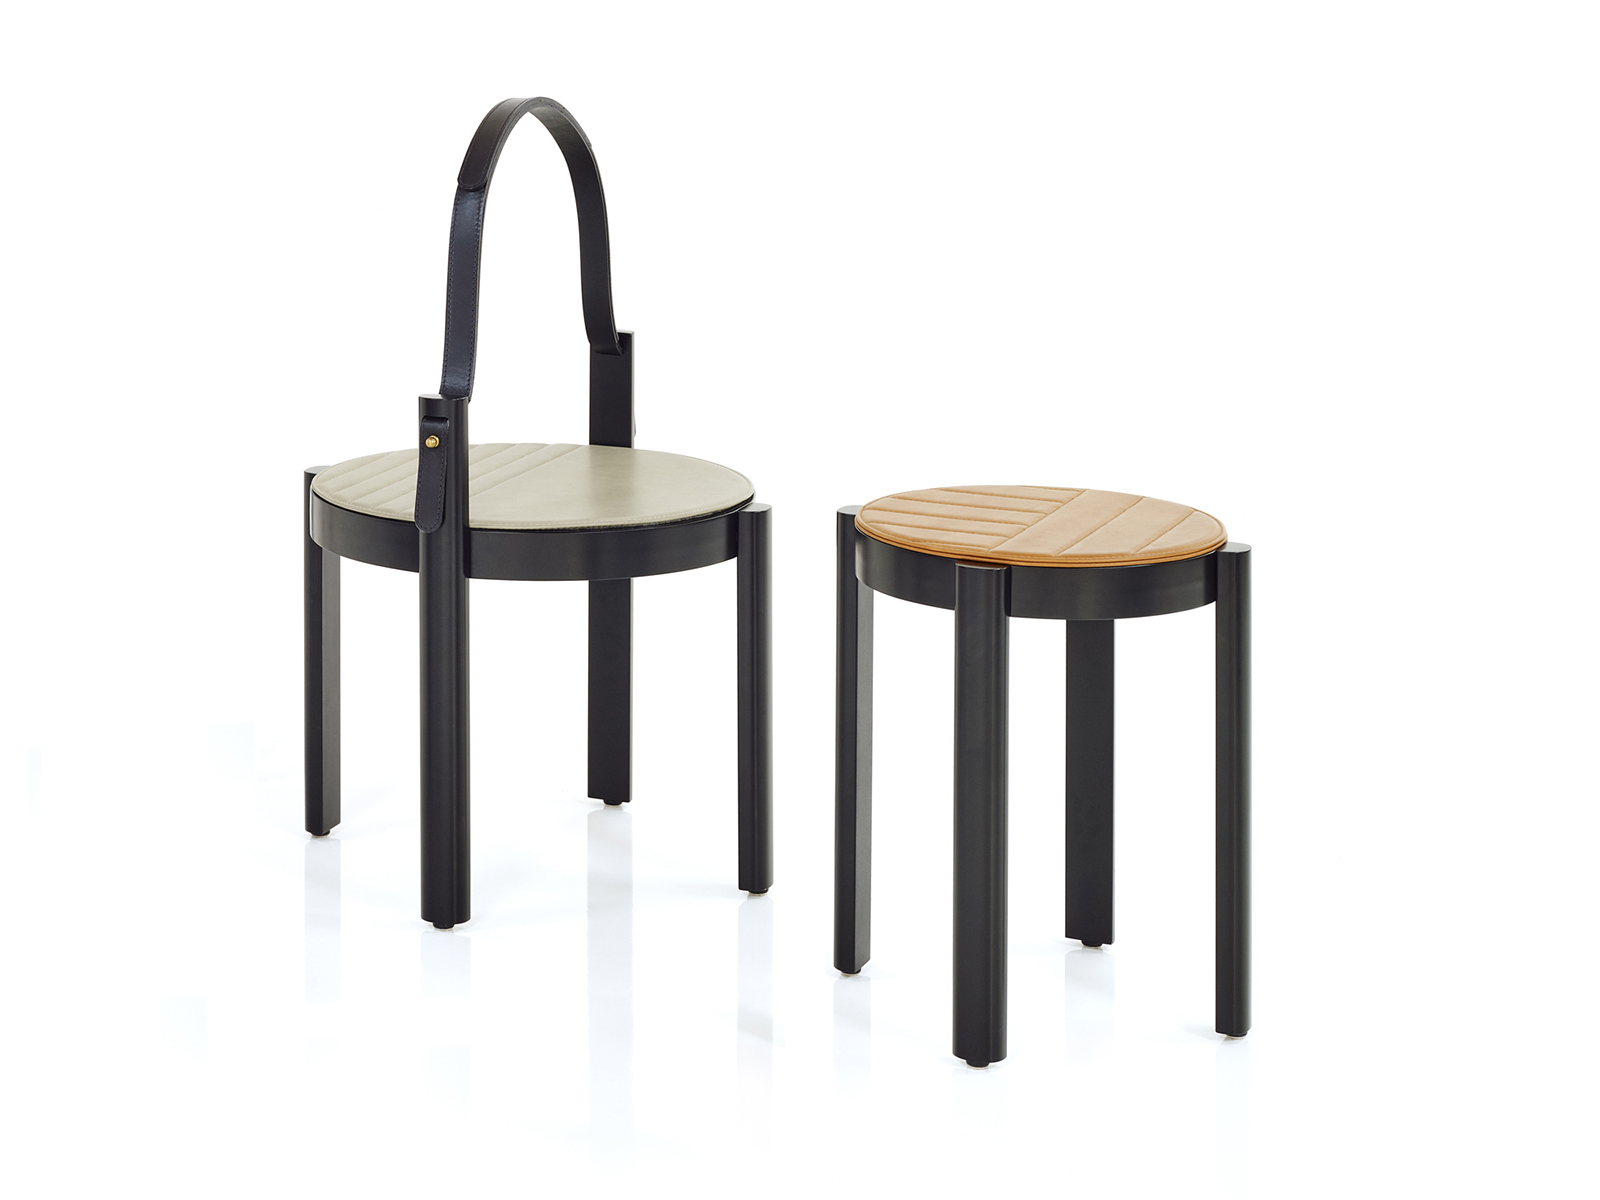 Melange Handle Table & Stool/Table For Wittmann - New project launched at IMM Cologne 2018